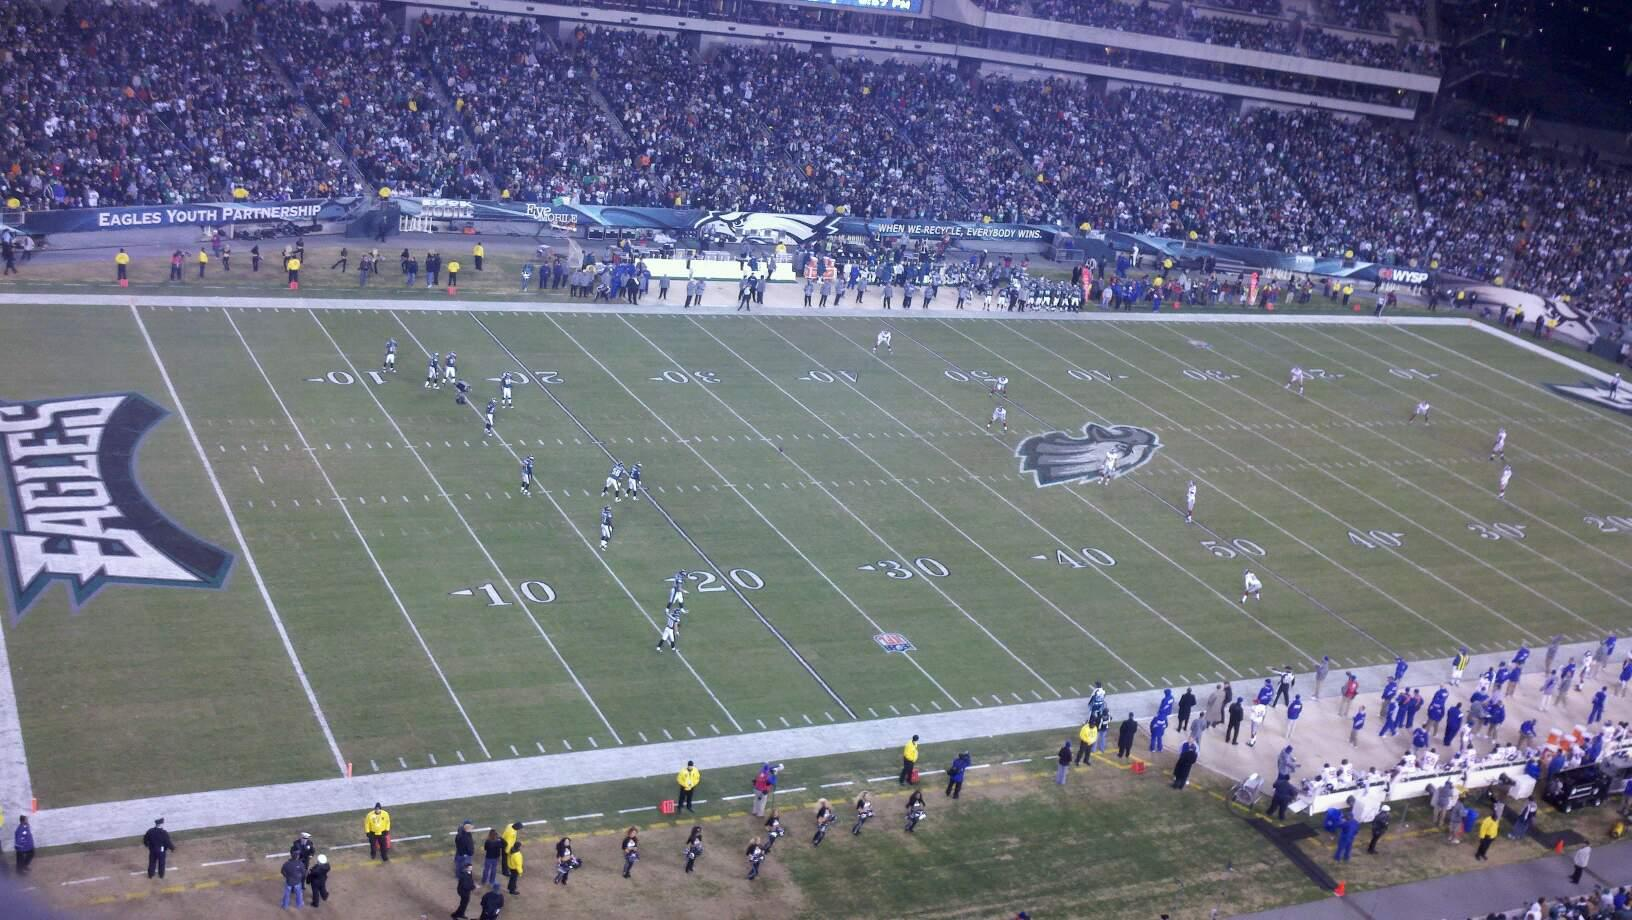 Lincoln Financial Field Section 220 Row 2 Seat 1